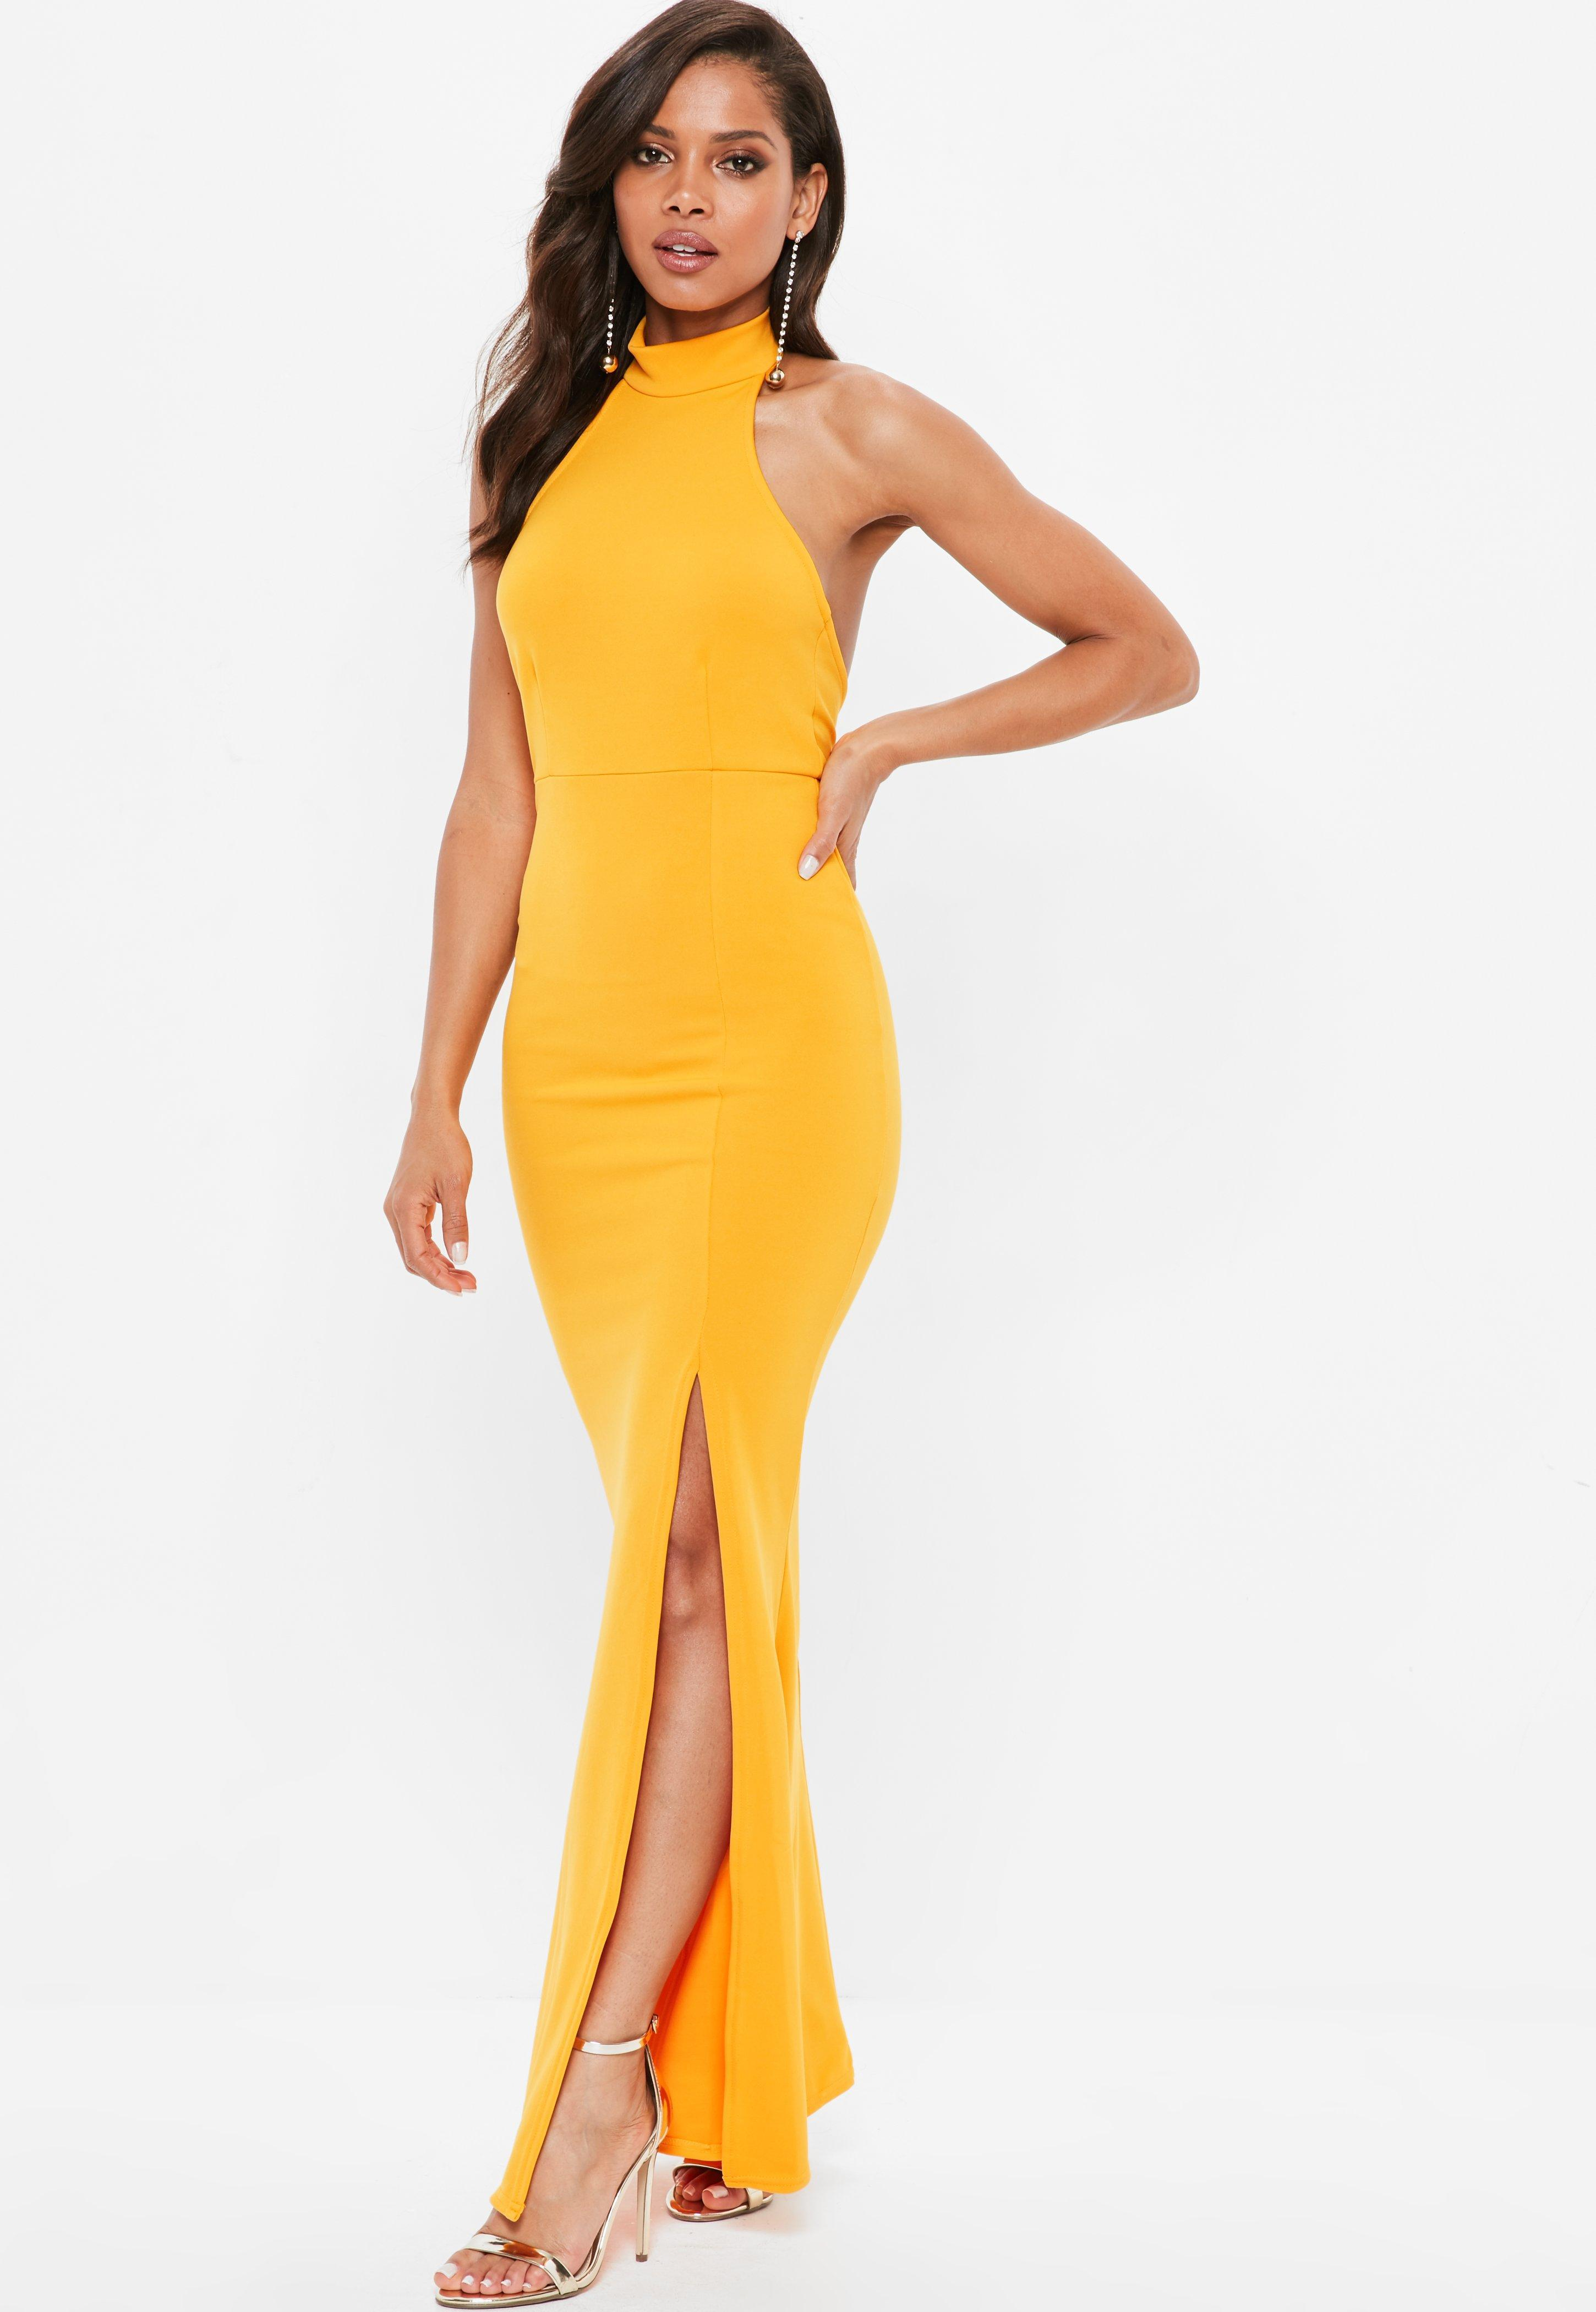 e613adc338 Lyst - Missguided Yellow Choker Halterneck Low Back Maxi Dress in Yellow